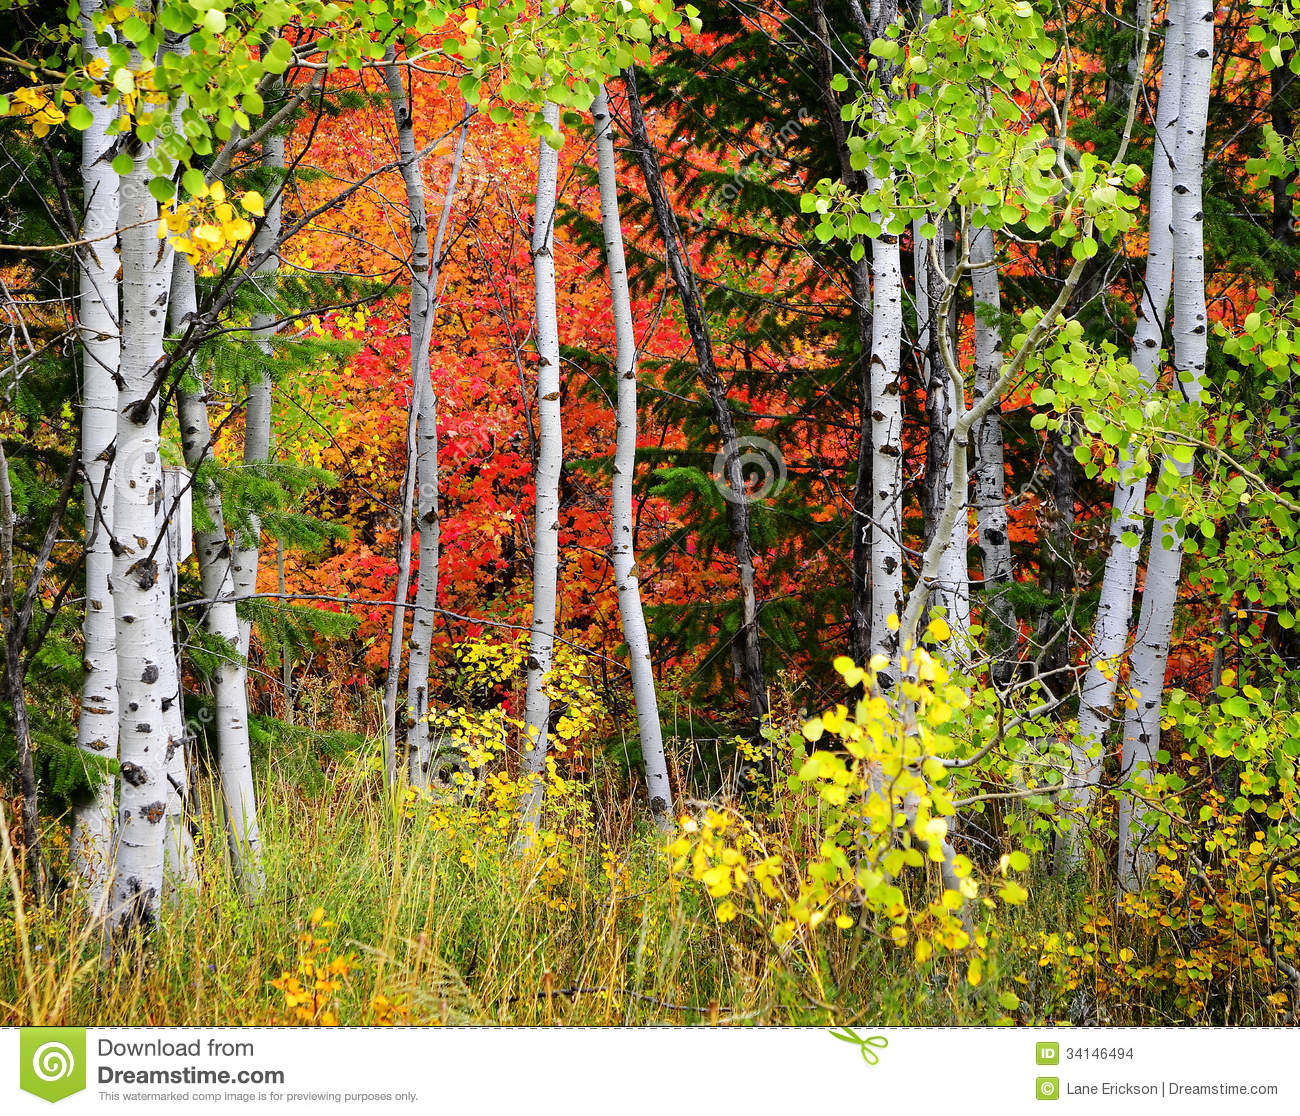 ... Of Pine, Aspen And Pine Trees In Fall Stock Images - Image: 34146494